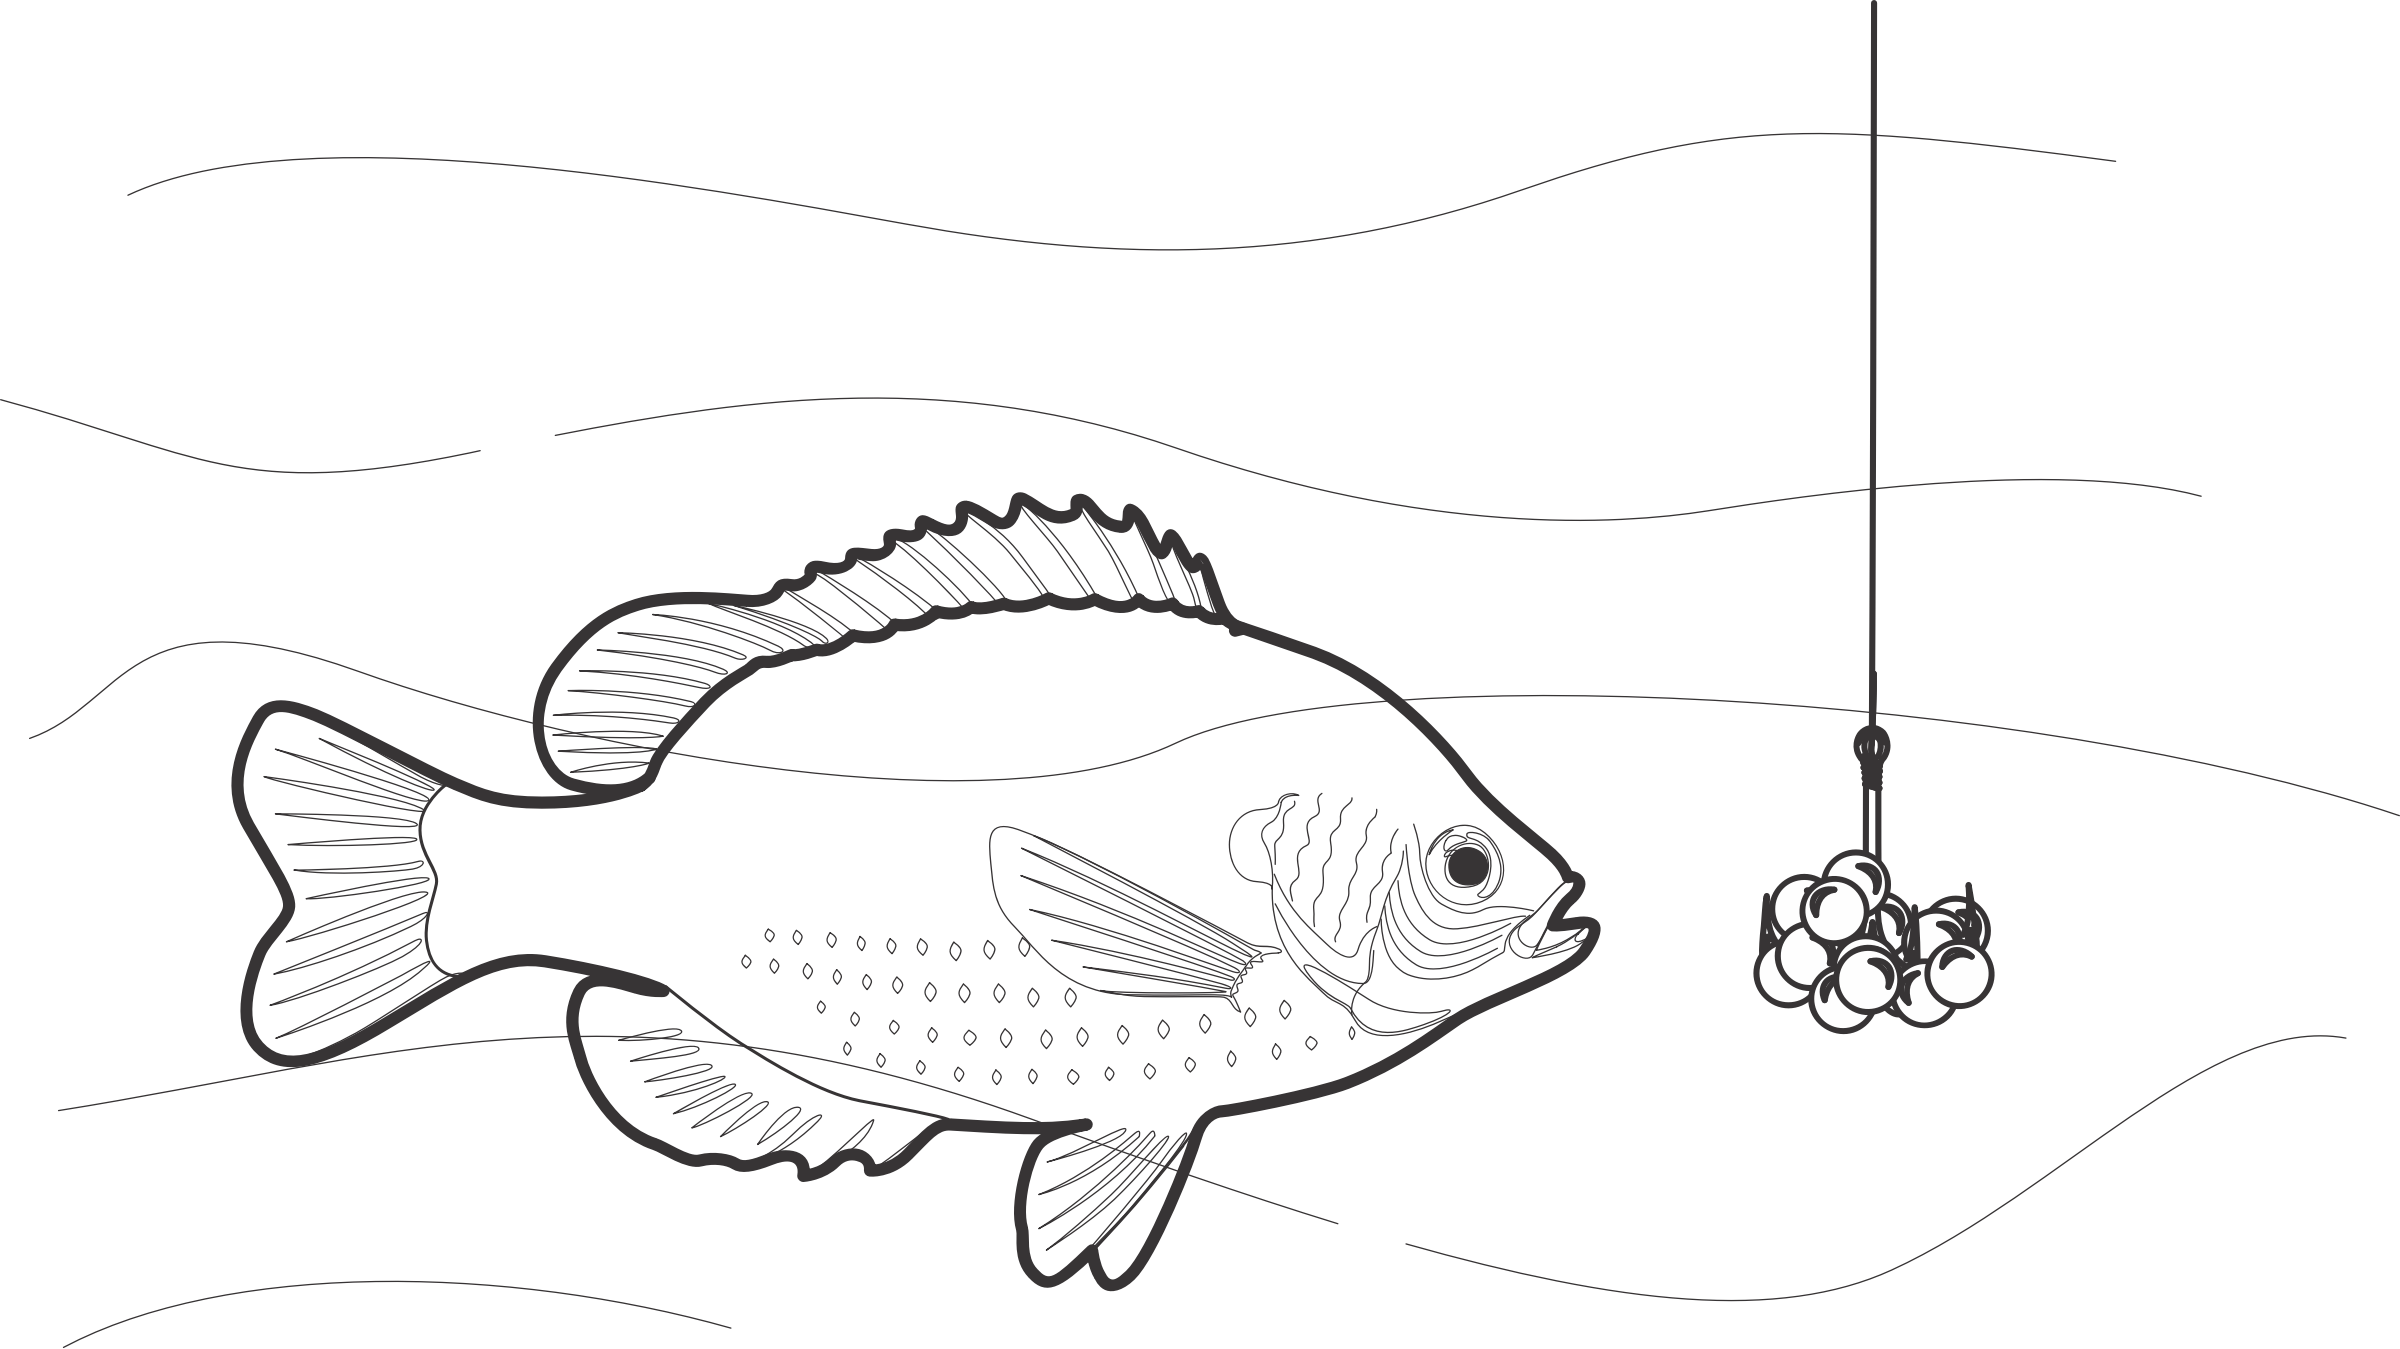 Fish trap clipart image royalty free library Clipart - Beaded Fish Bait image royalty free library